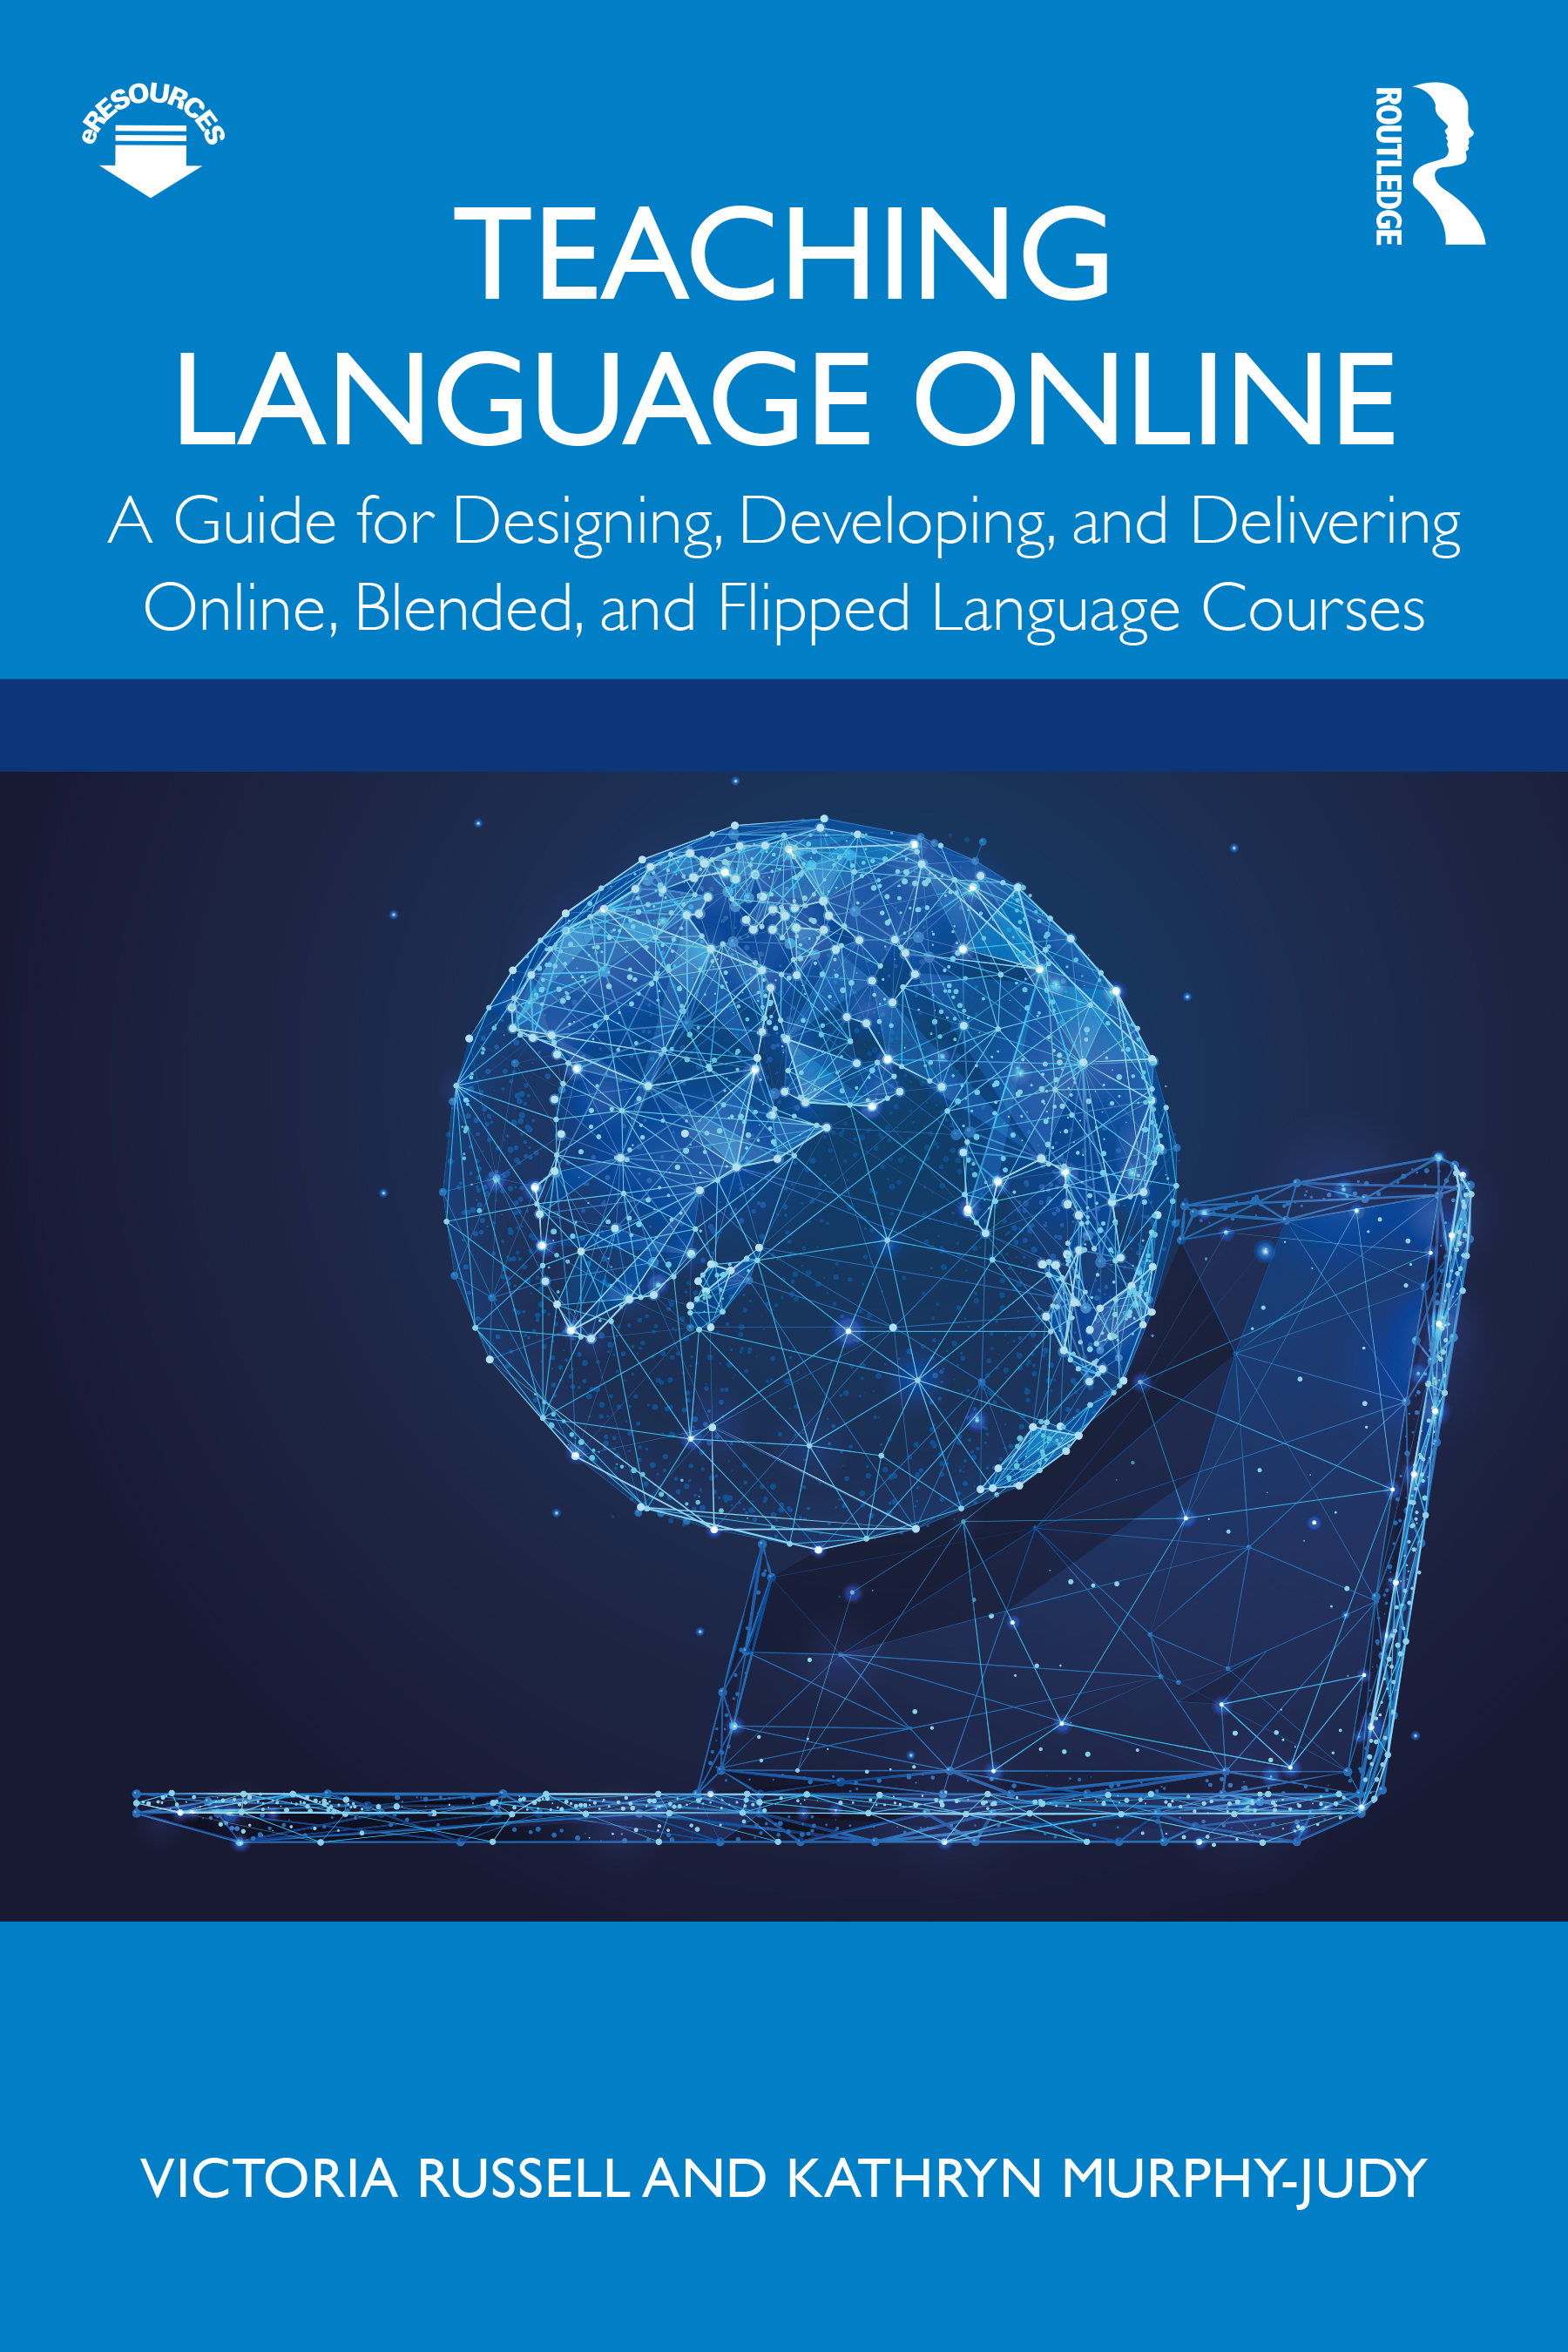 Teaching Language Online: A Guide for Designing, Developing, and Delivering Online, Blended, and Flipped Language Courses book cover